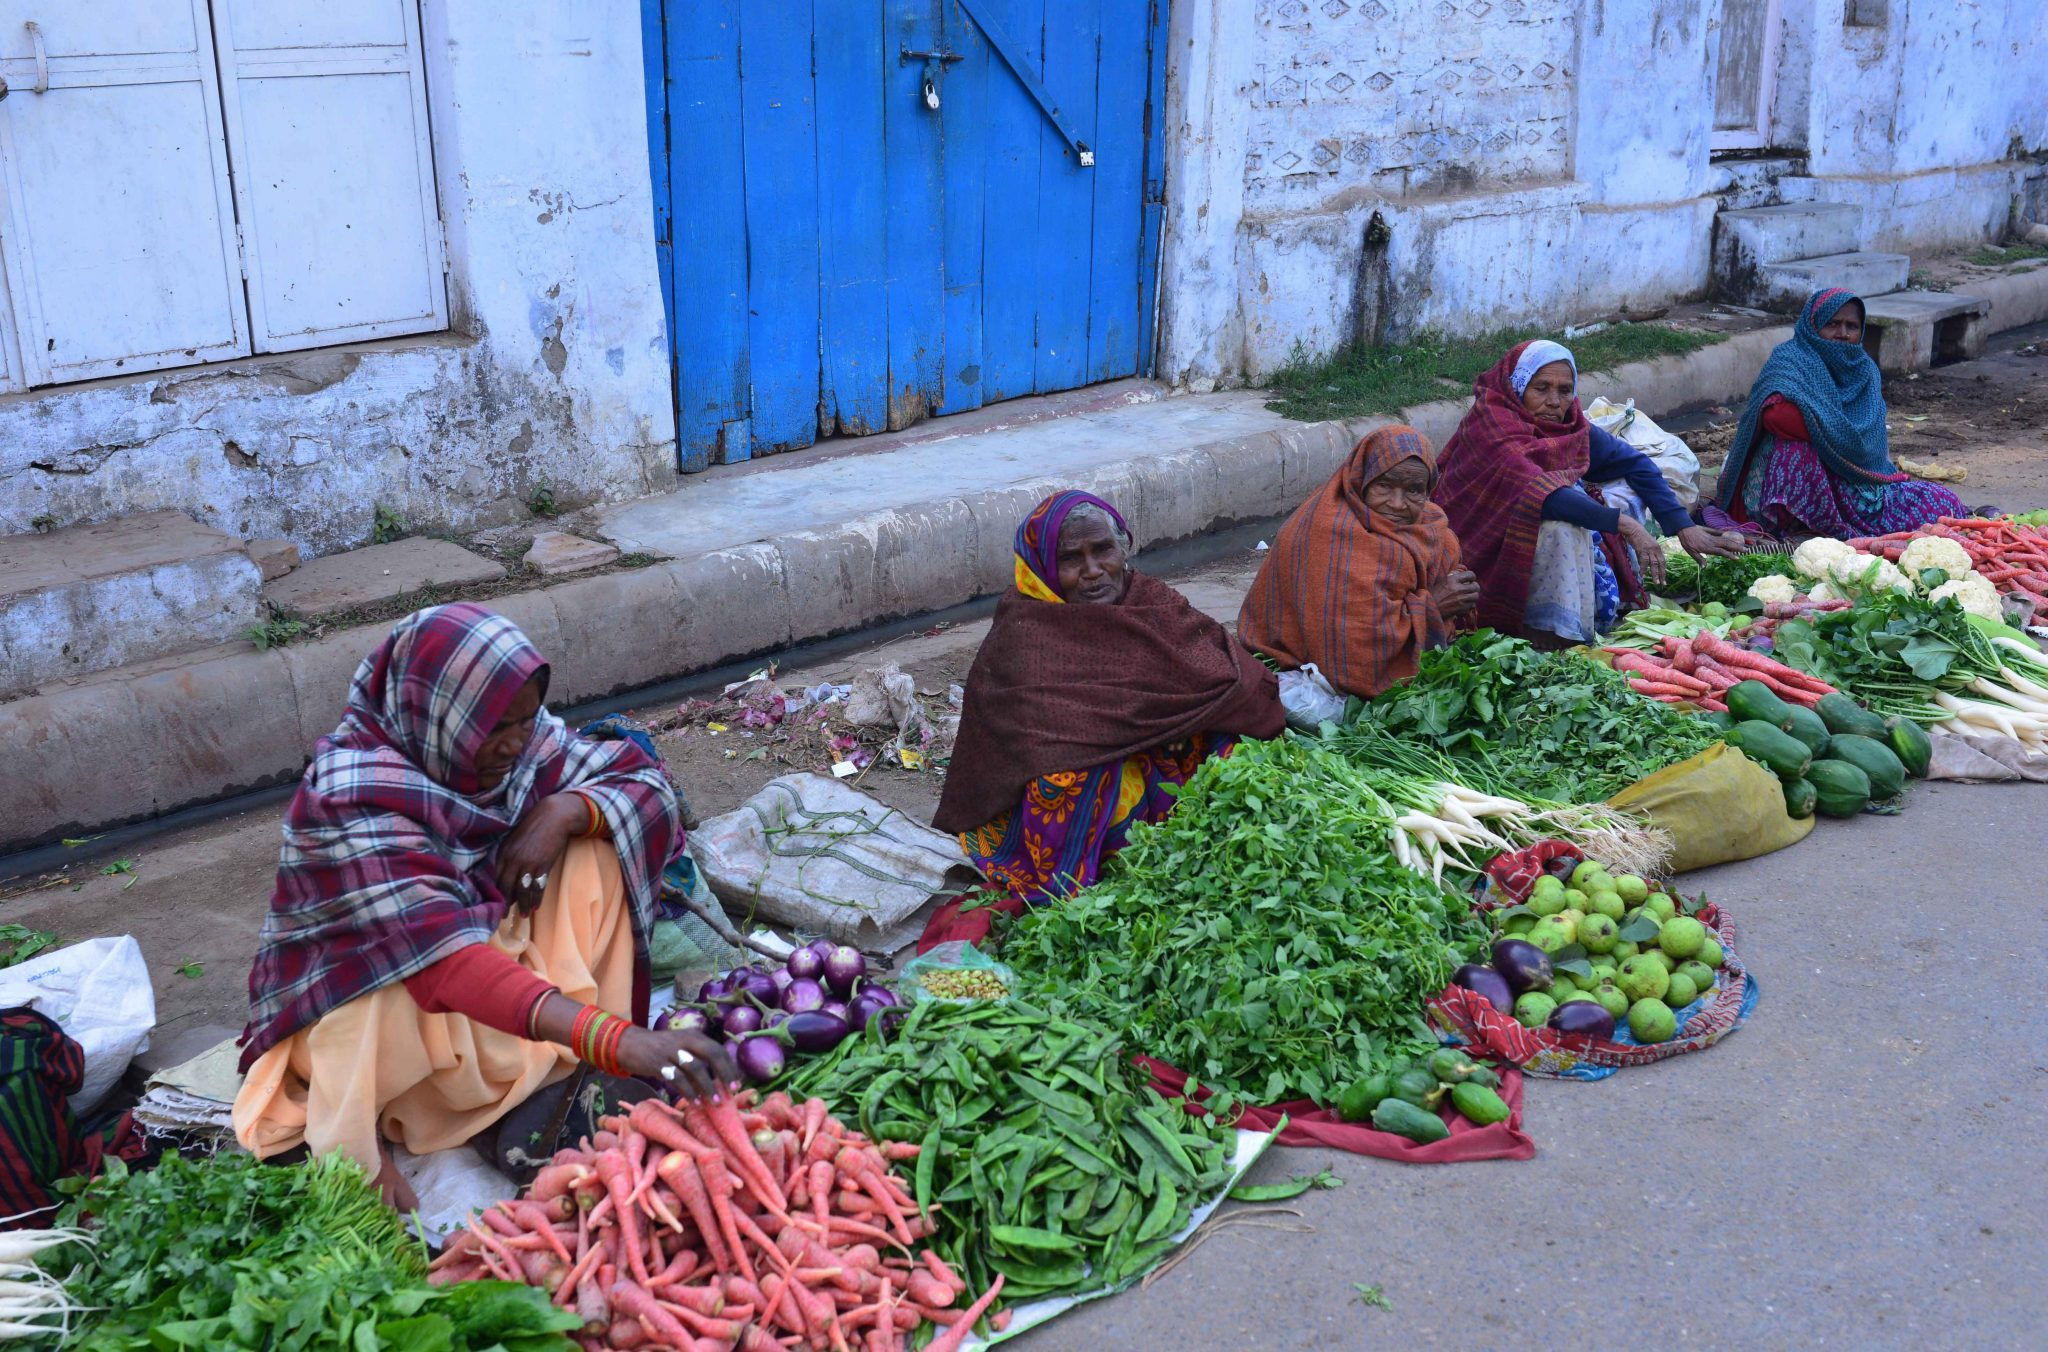 Selling vegetables, Varanasi